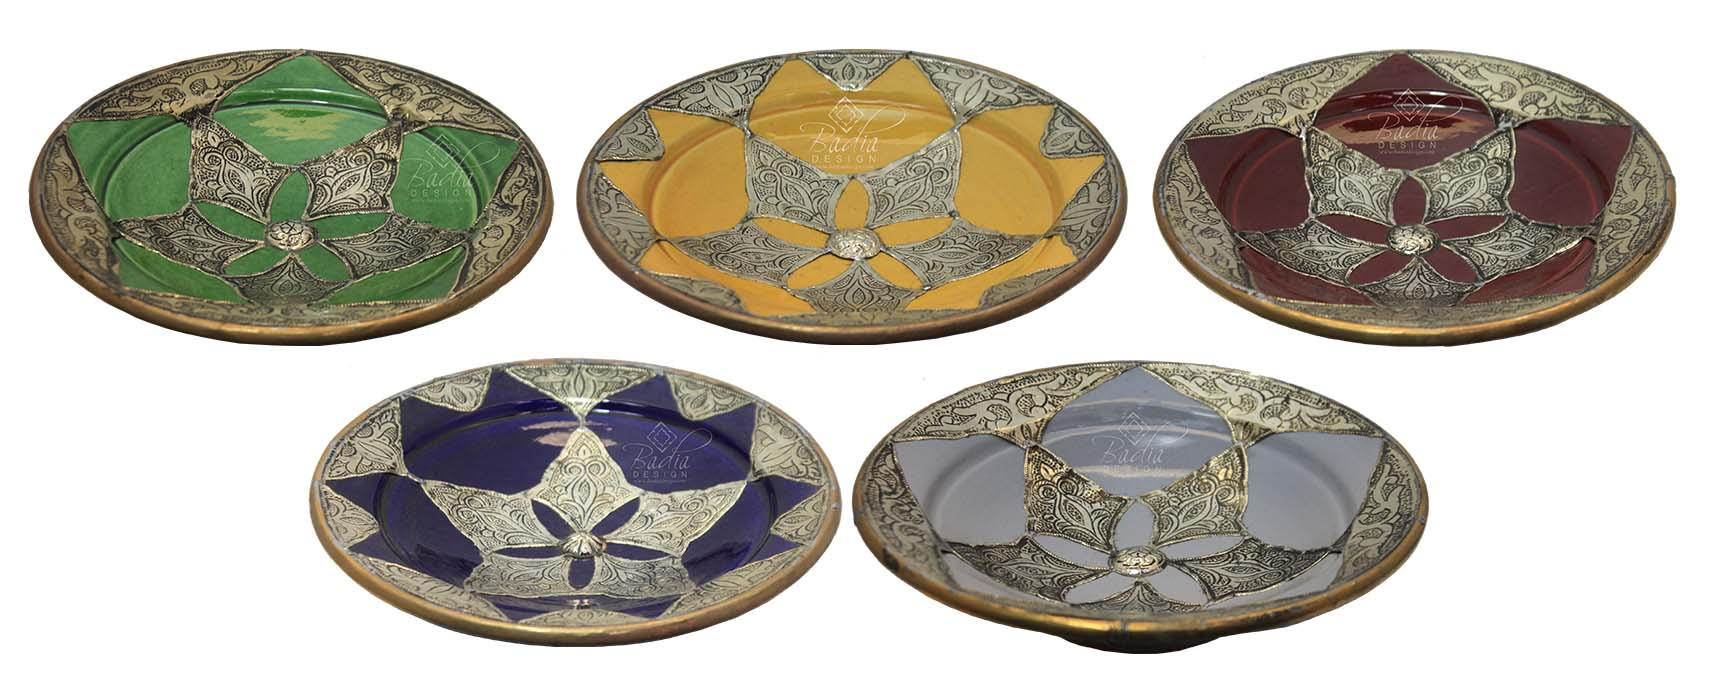 moroccan-hand-painted-ceramic-bowl-with-metal-work-cer-b014.jpg